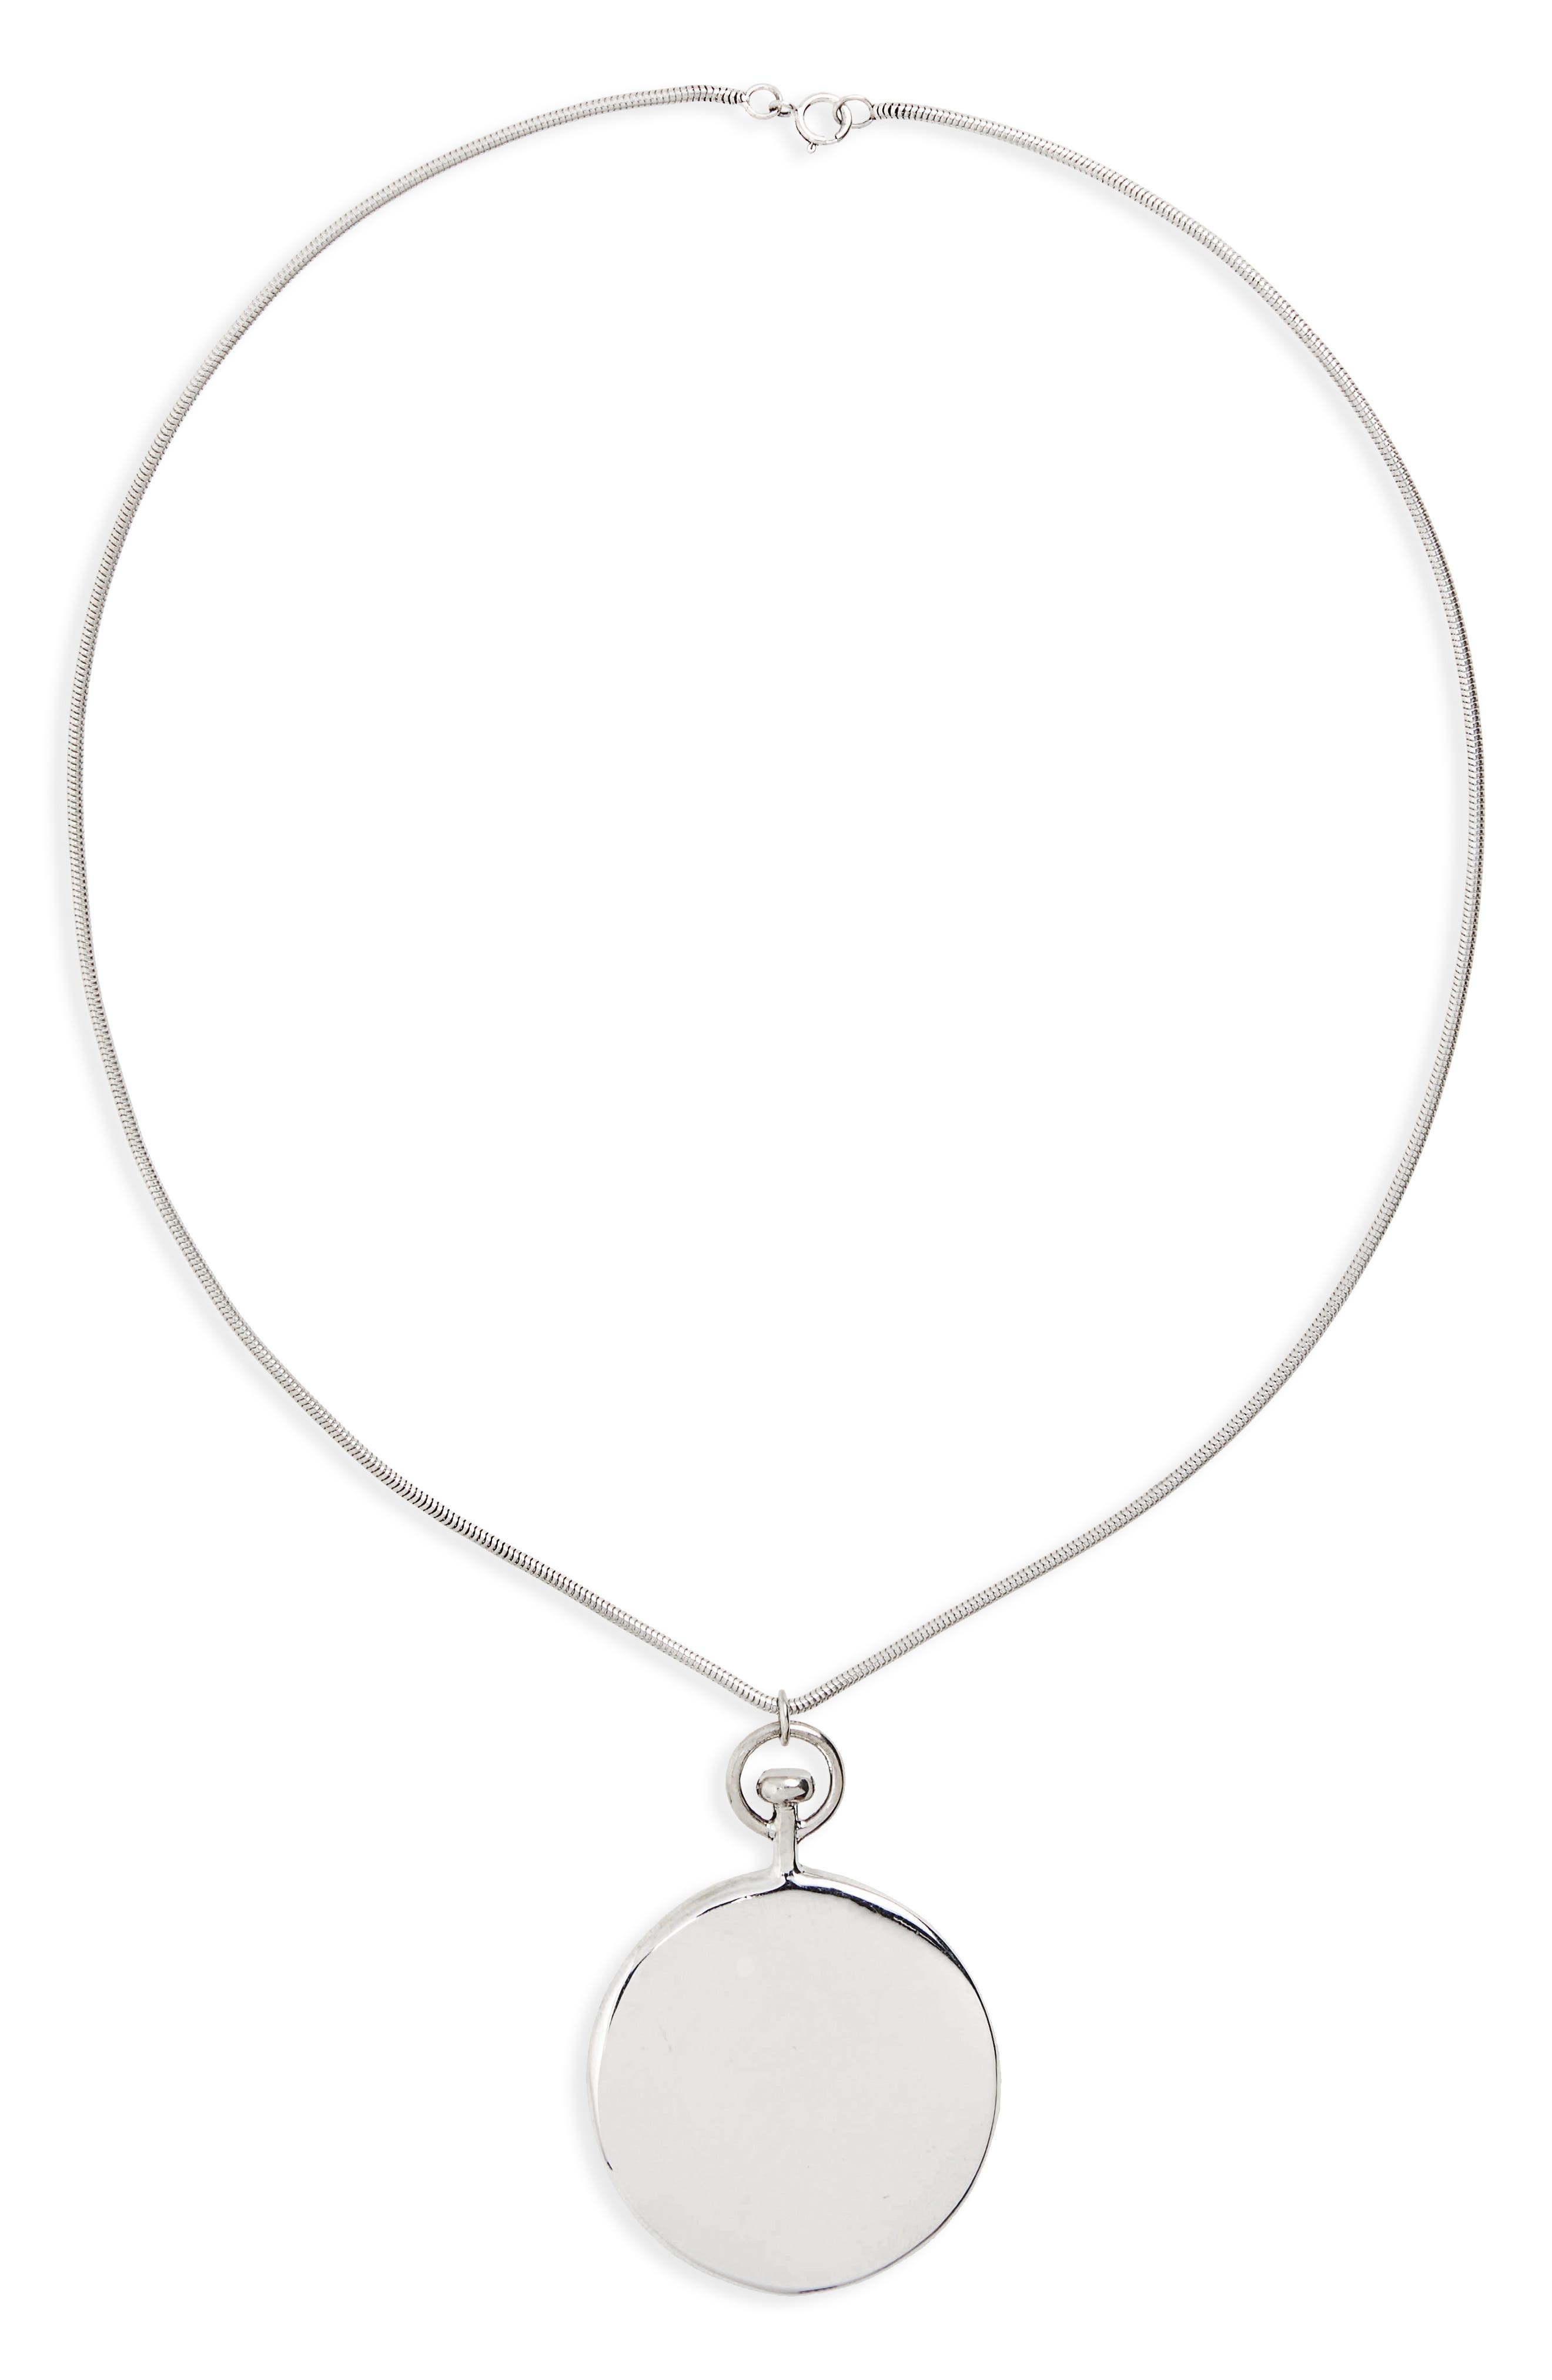 Alternate Image 1 Selected - Sophie Buhai Short Large Circle Pendant Necklace